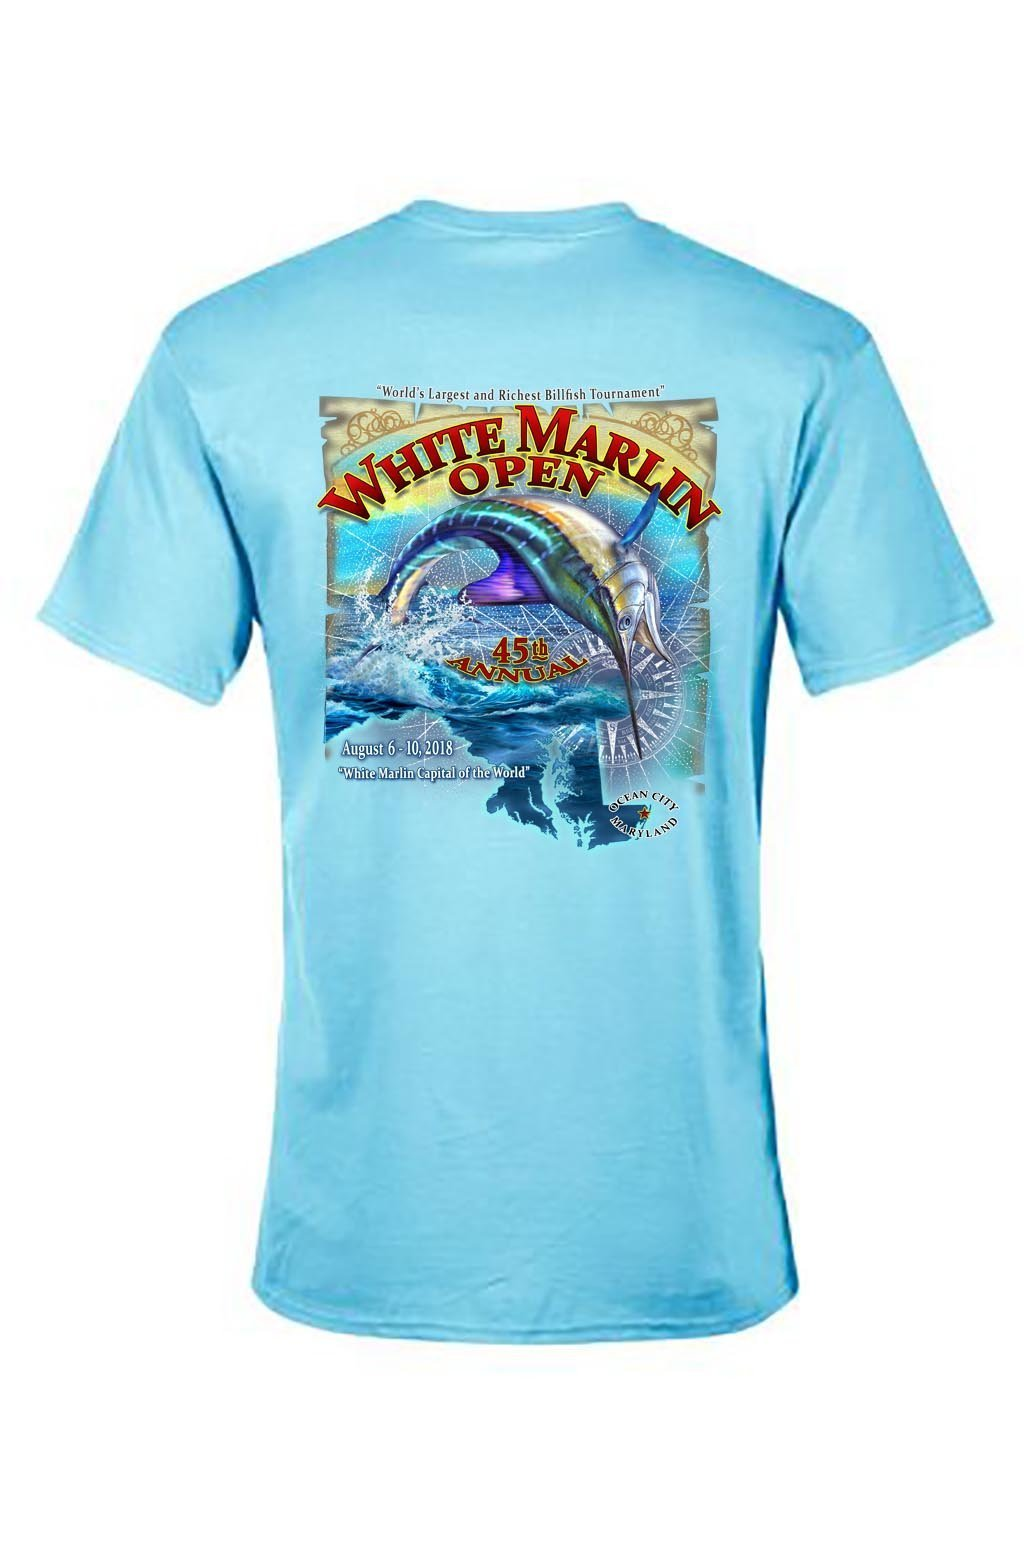 3e0631428ca6 2018 White Marlin Open Short Sleeve T's | White Marlin Open Store